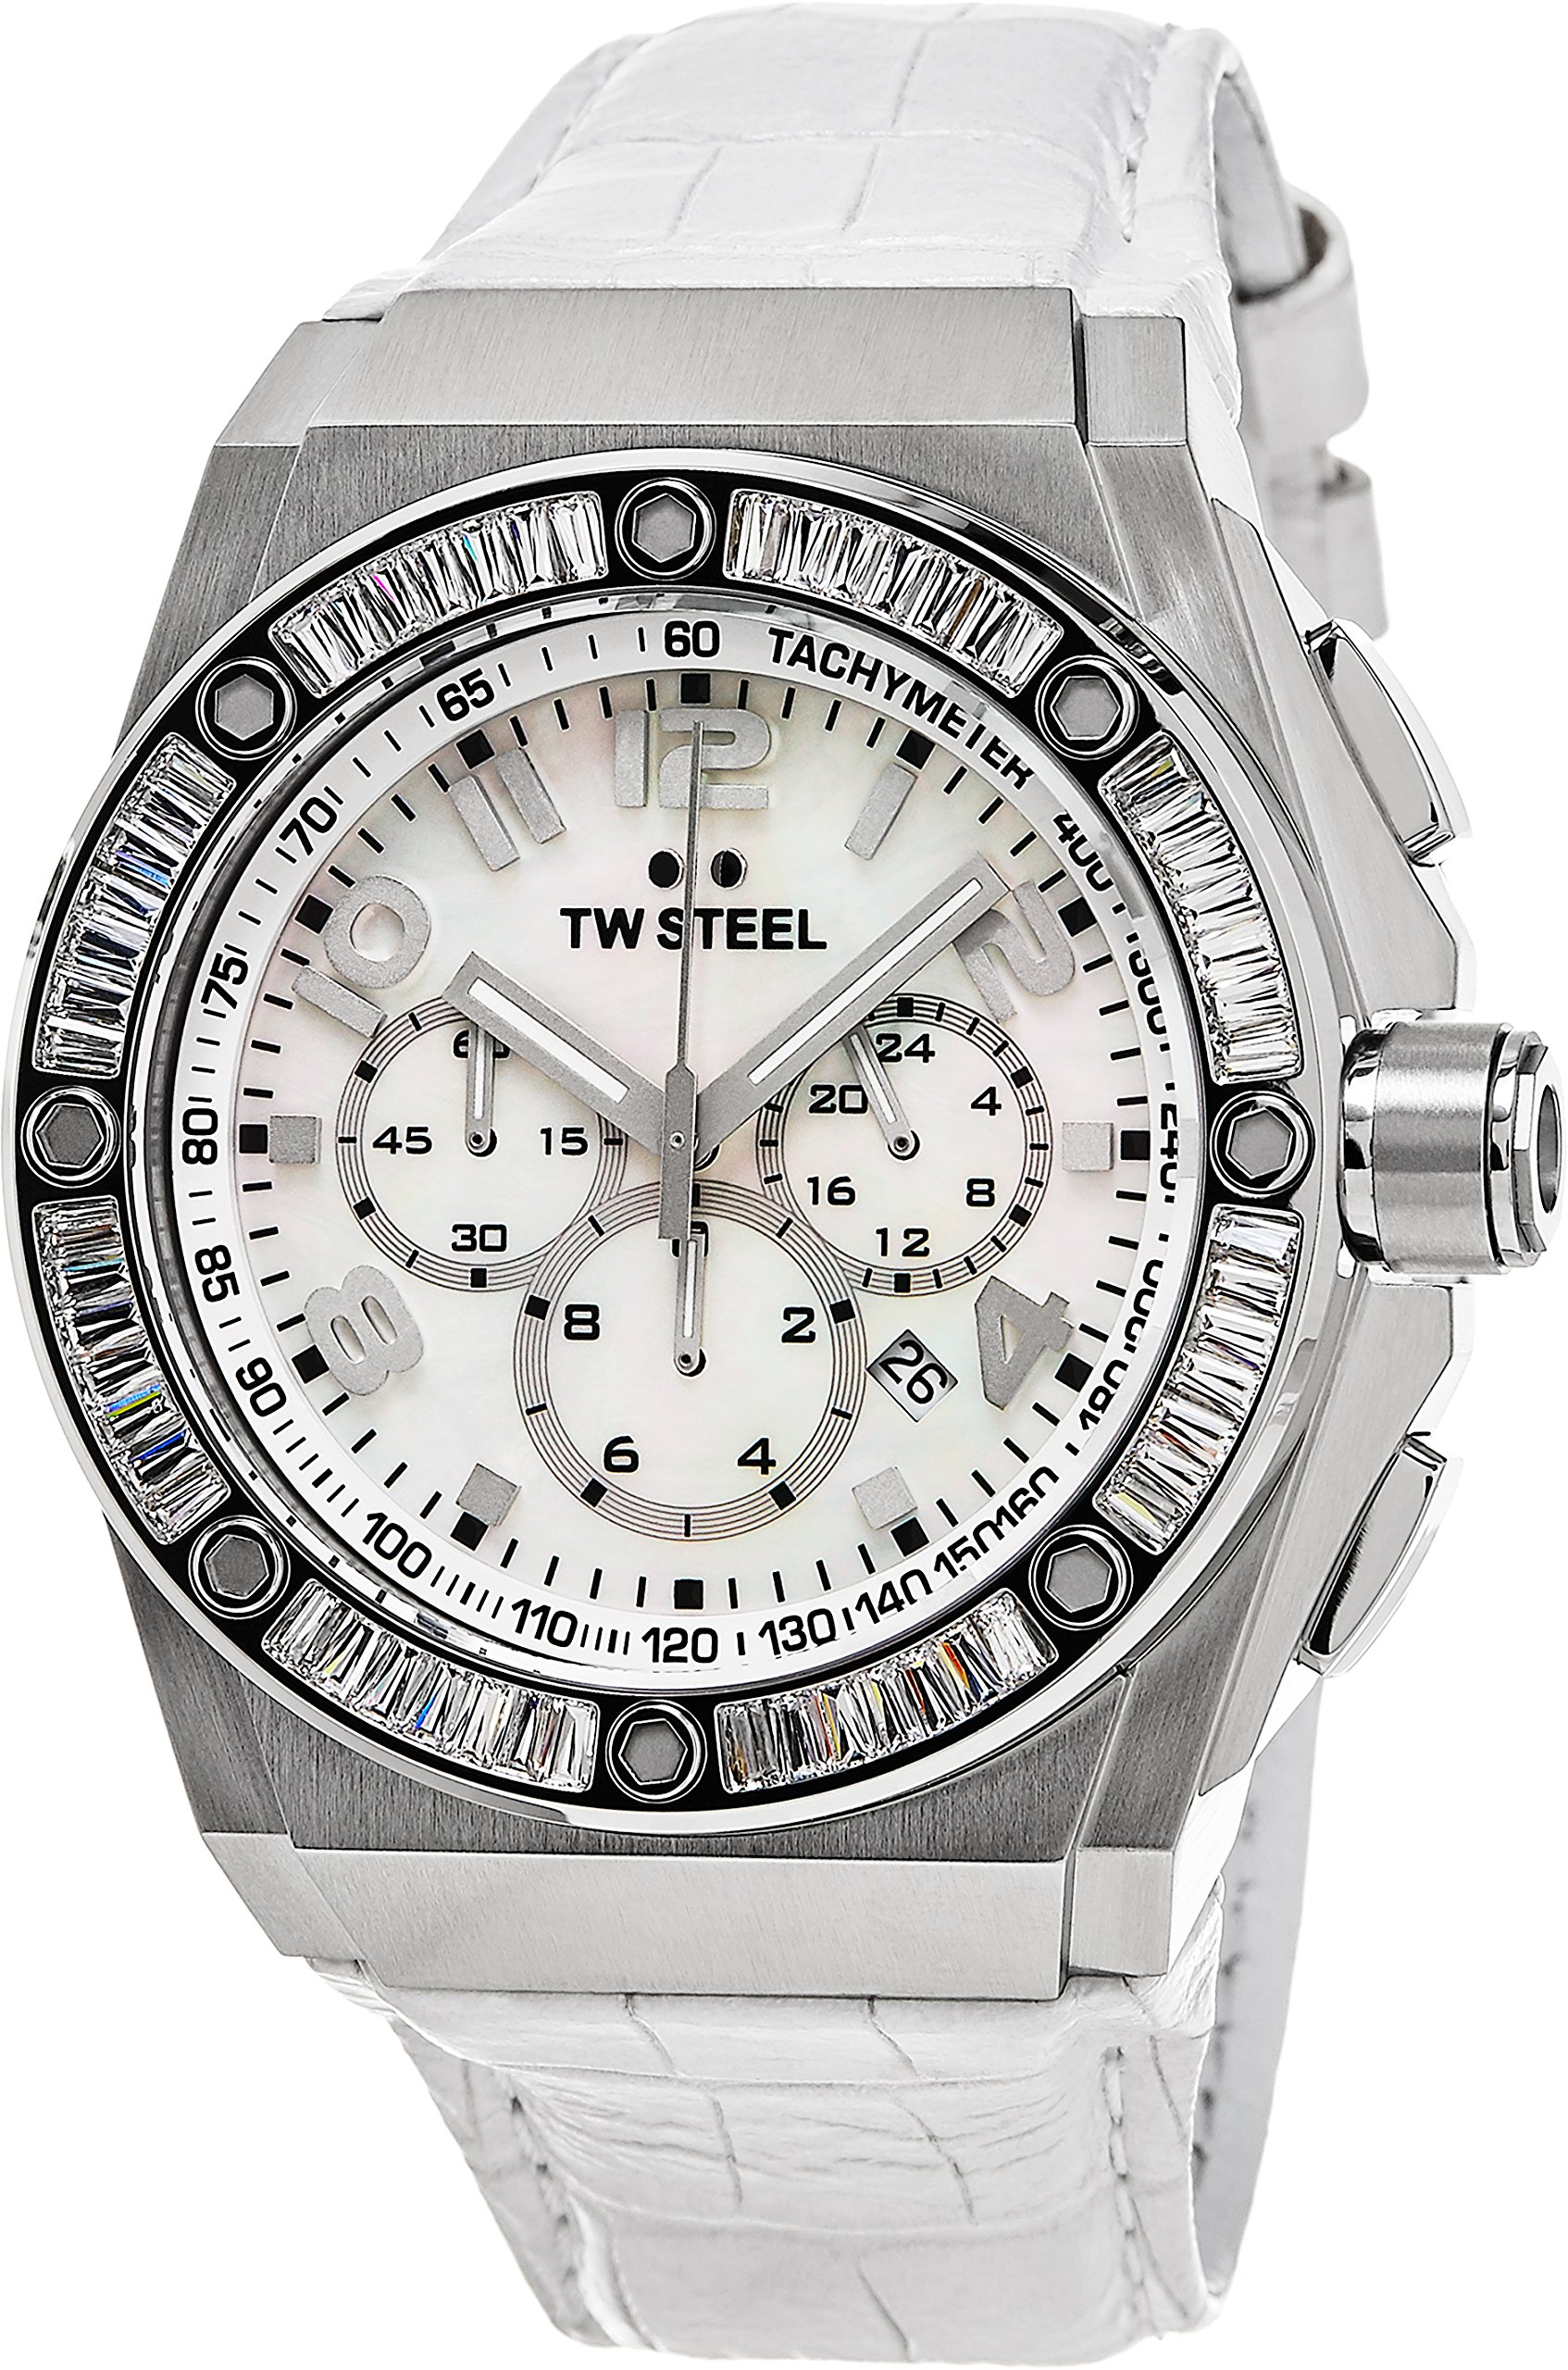 TW Steel CEO Tech Swarovski Crystal Stainless Steel Watch - Mother-of-Pearl Dial Date 24-hour TW Steel Watch Womens - White Leather Band 44mm Chronograph Watch CE4015 by TW Steel